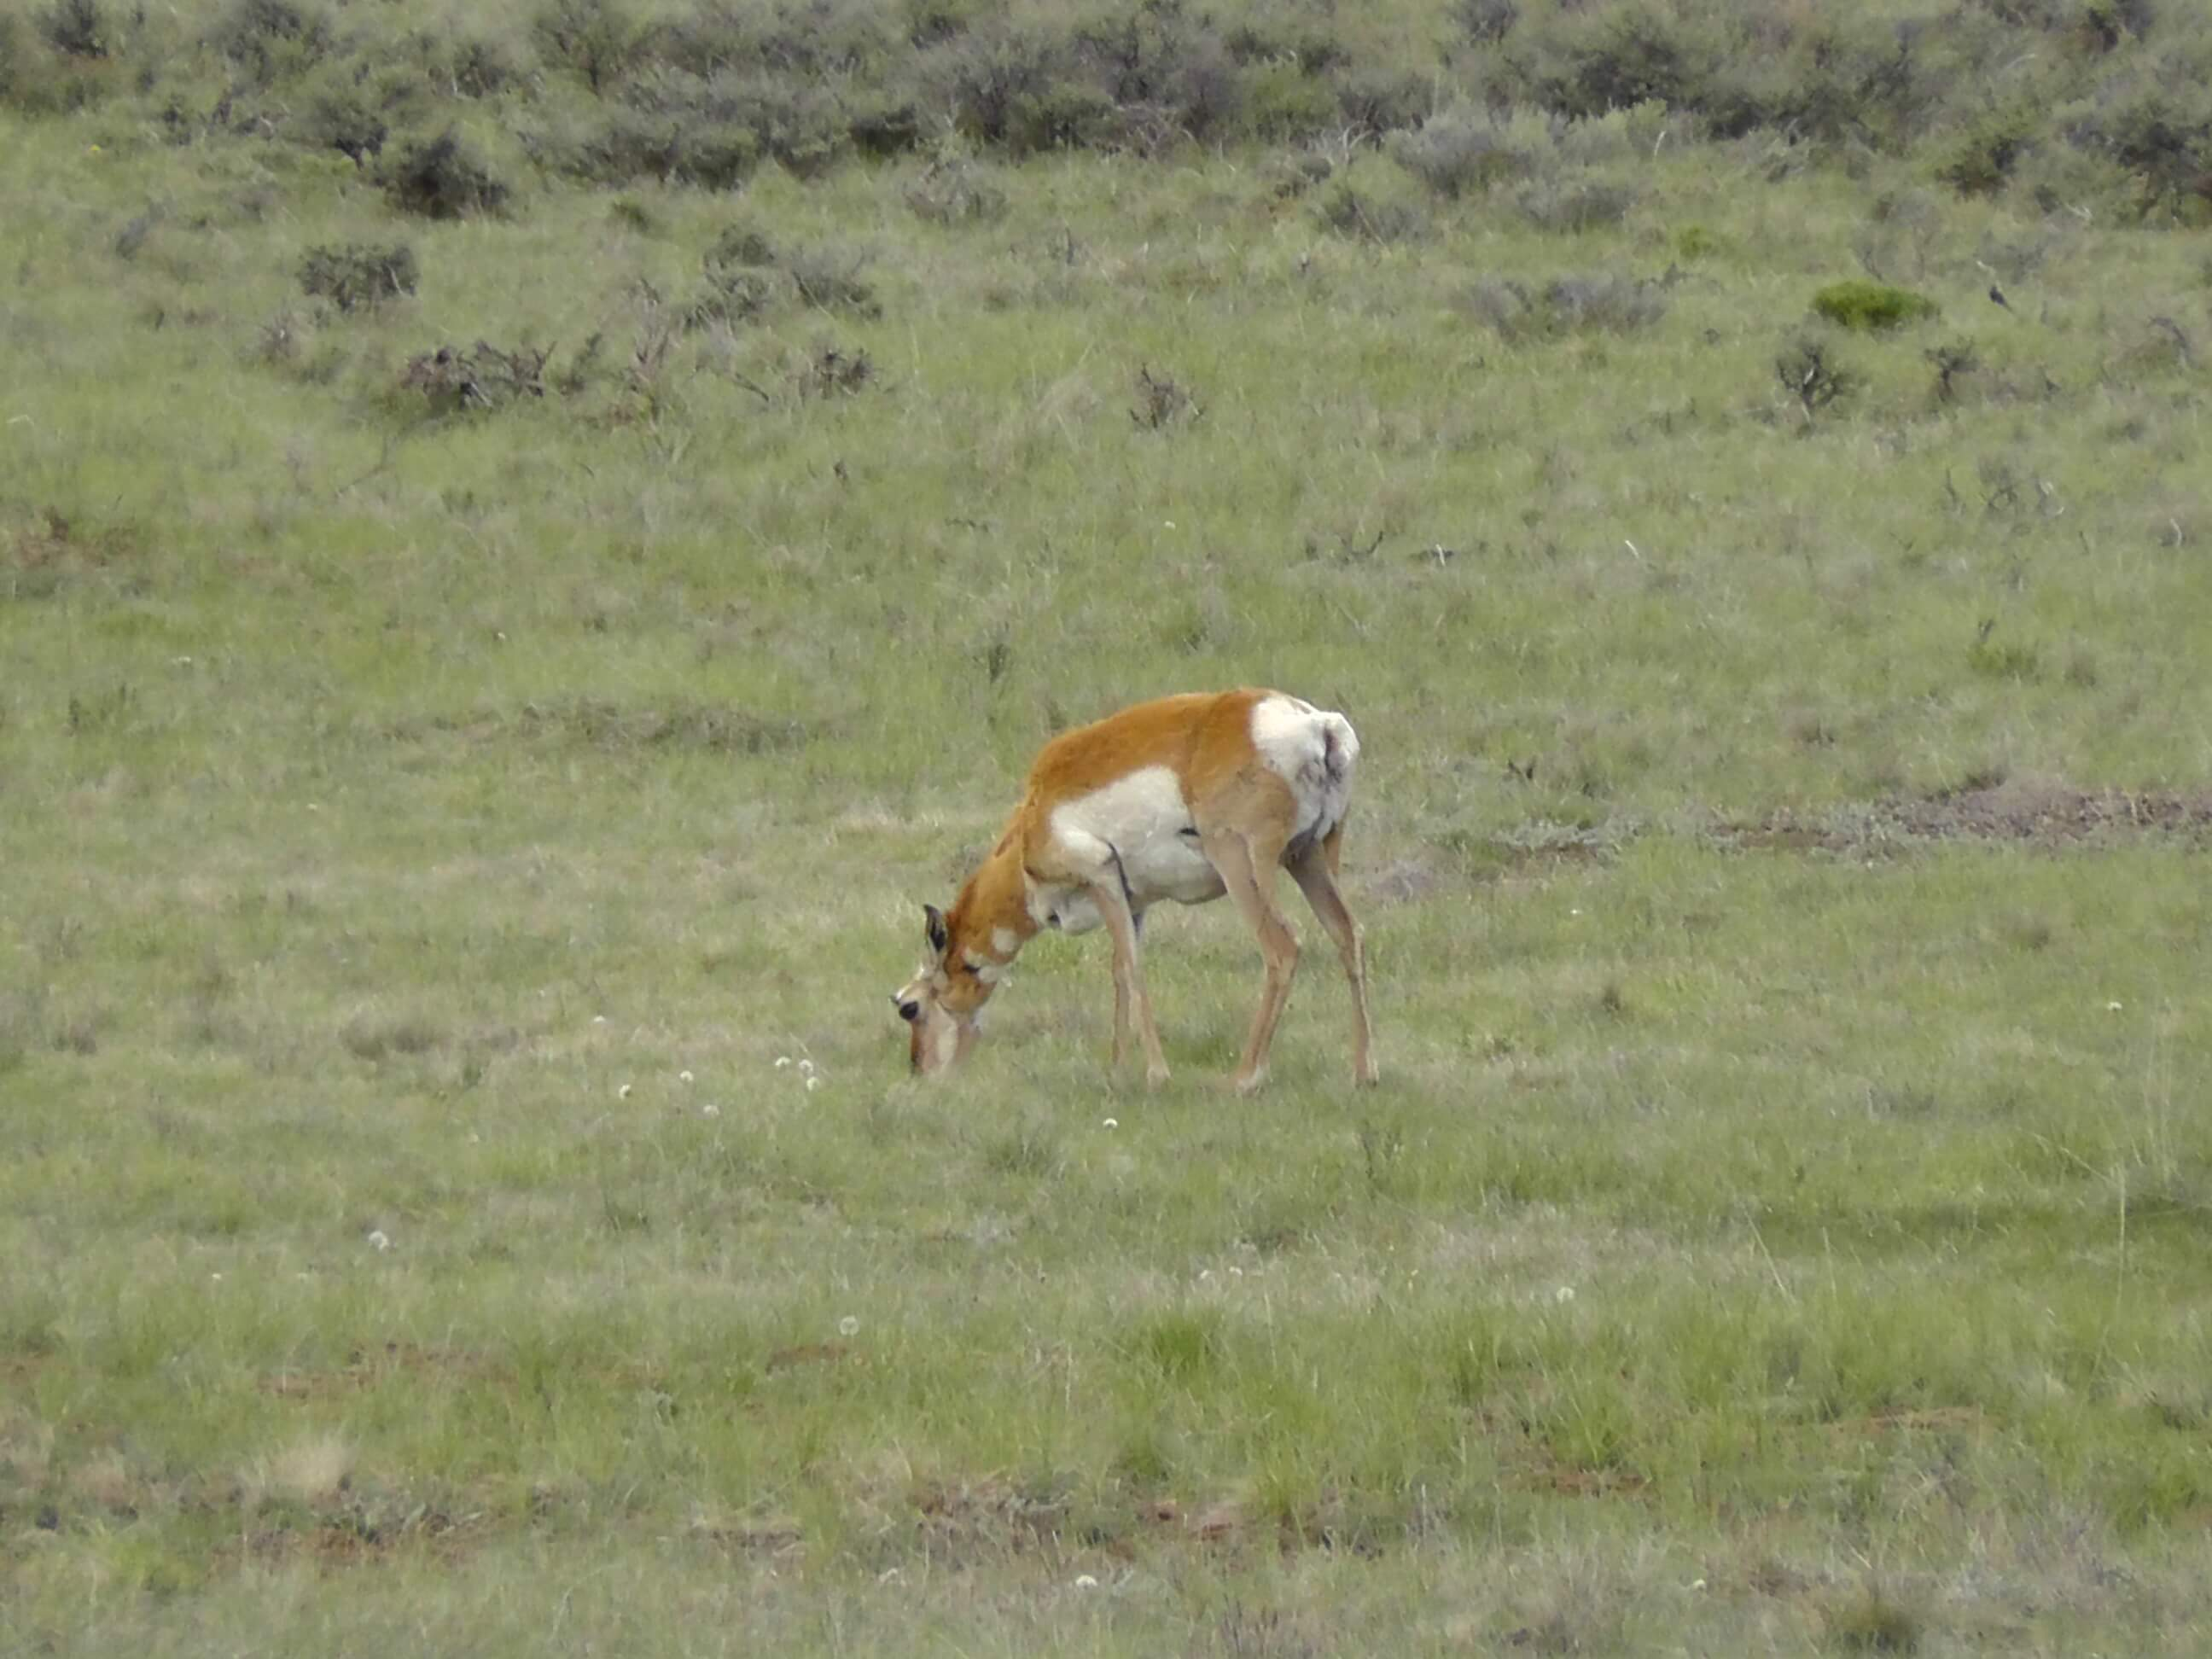 Pronghorn antelope in Bryce Canyon National Park, UT